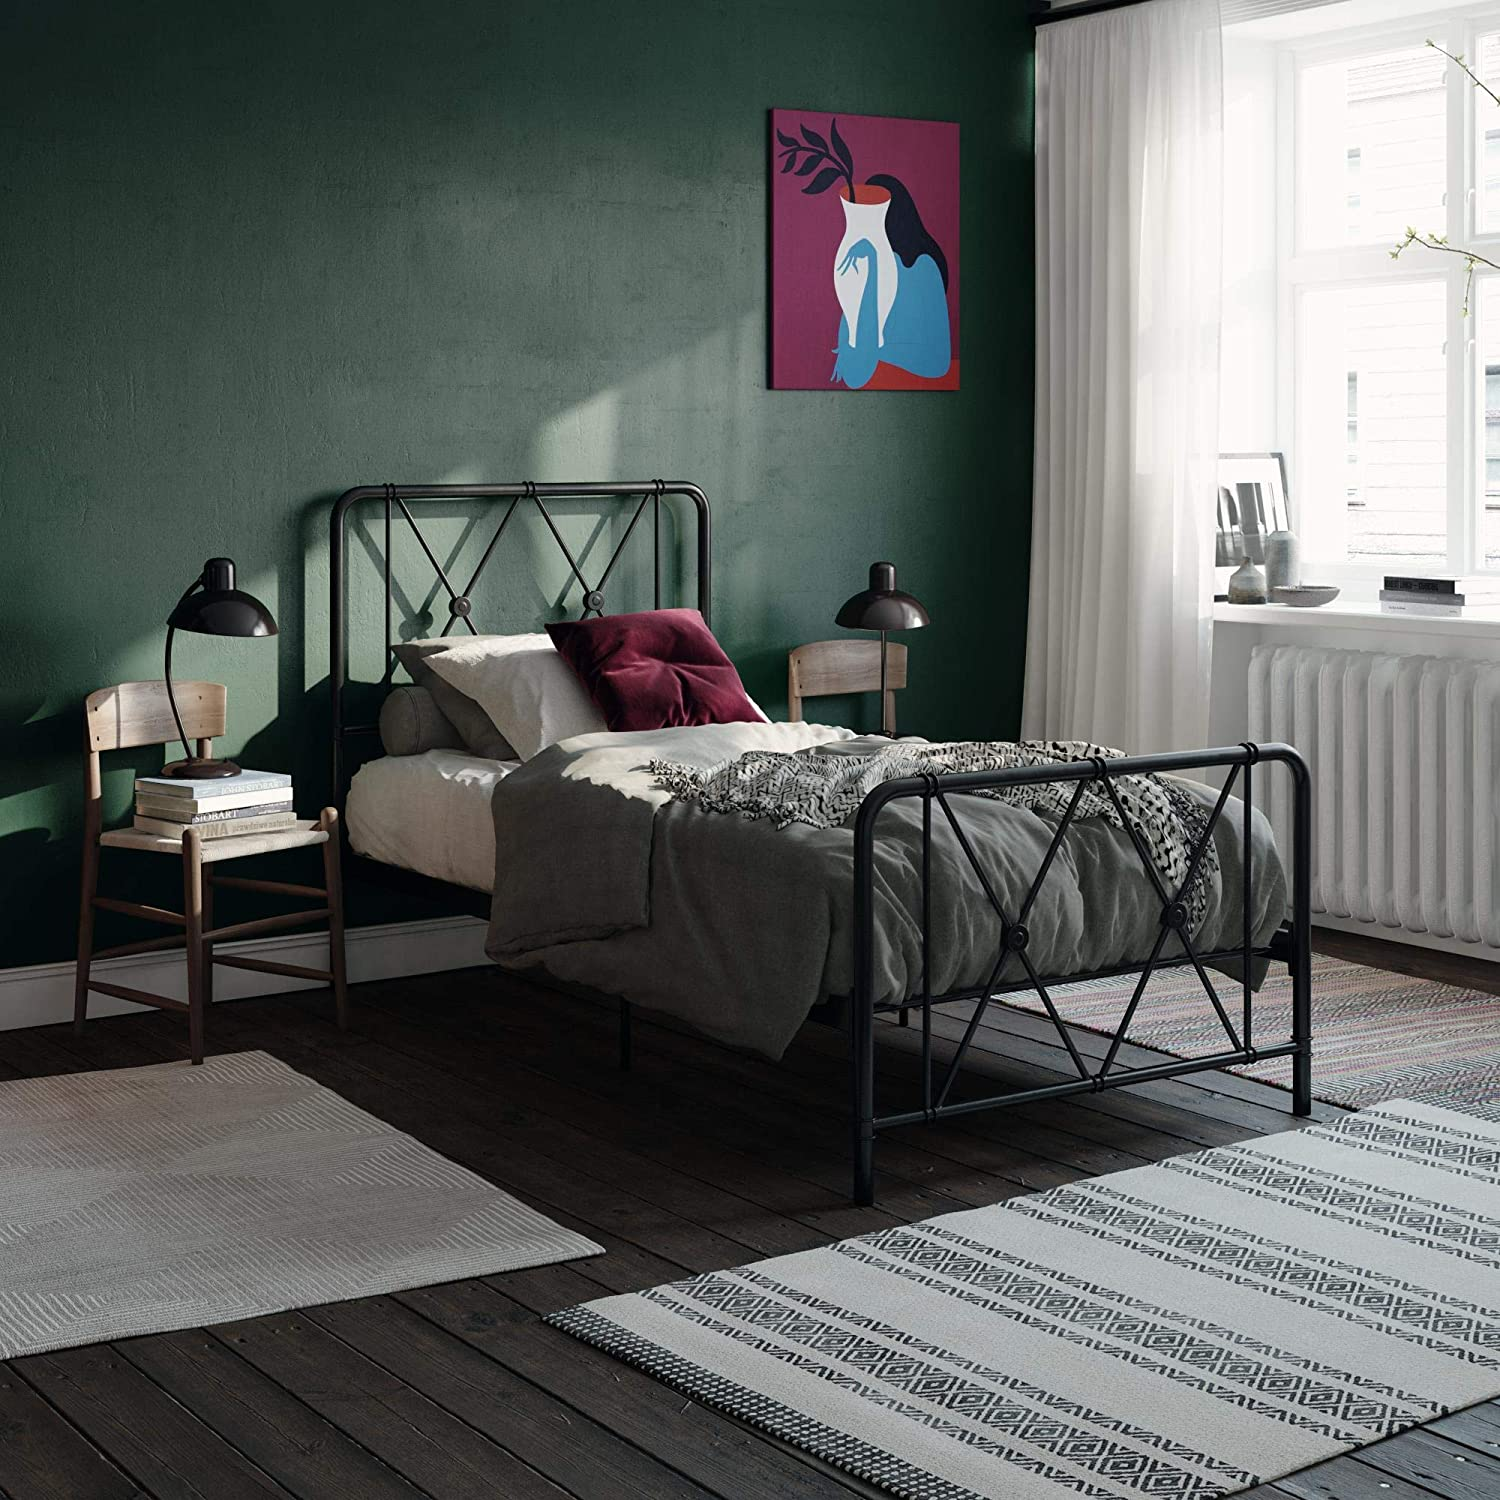 REALROOMS Ally Metal Farmhouse Bed, Sturdy Secured Steel, Adjustable Base, Twin Size Frame, Black